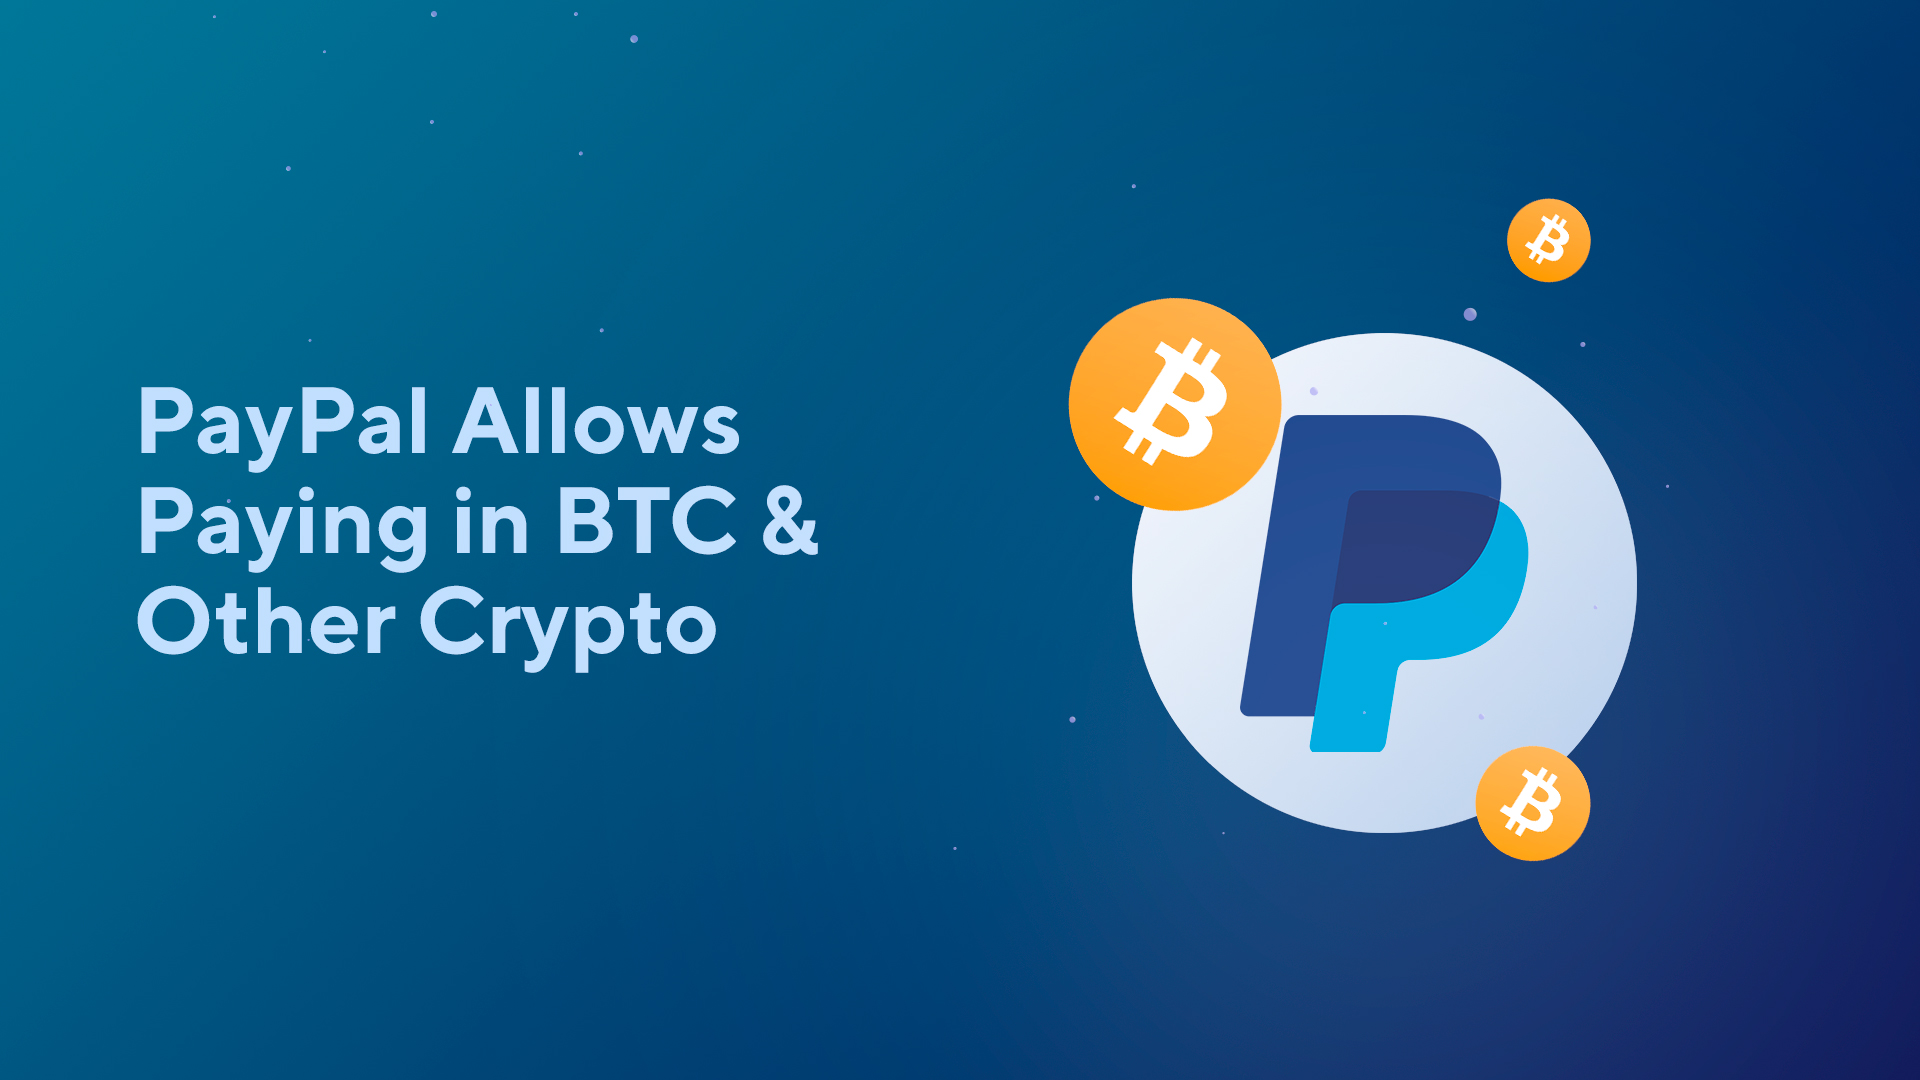 PayPal Allows Paying in BTC & Other Cryptocurrencies